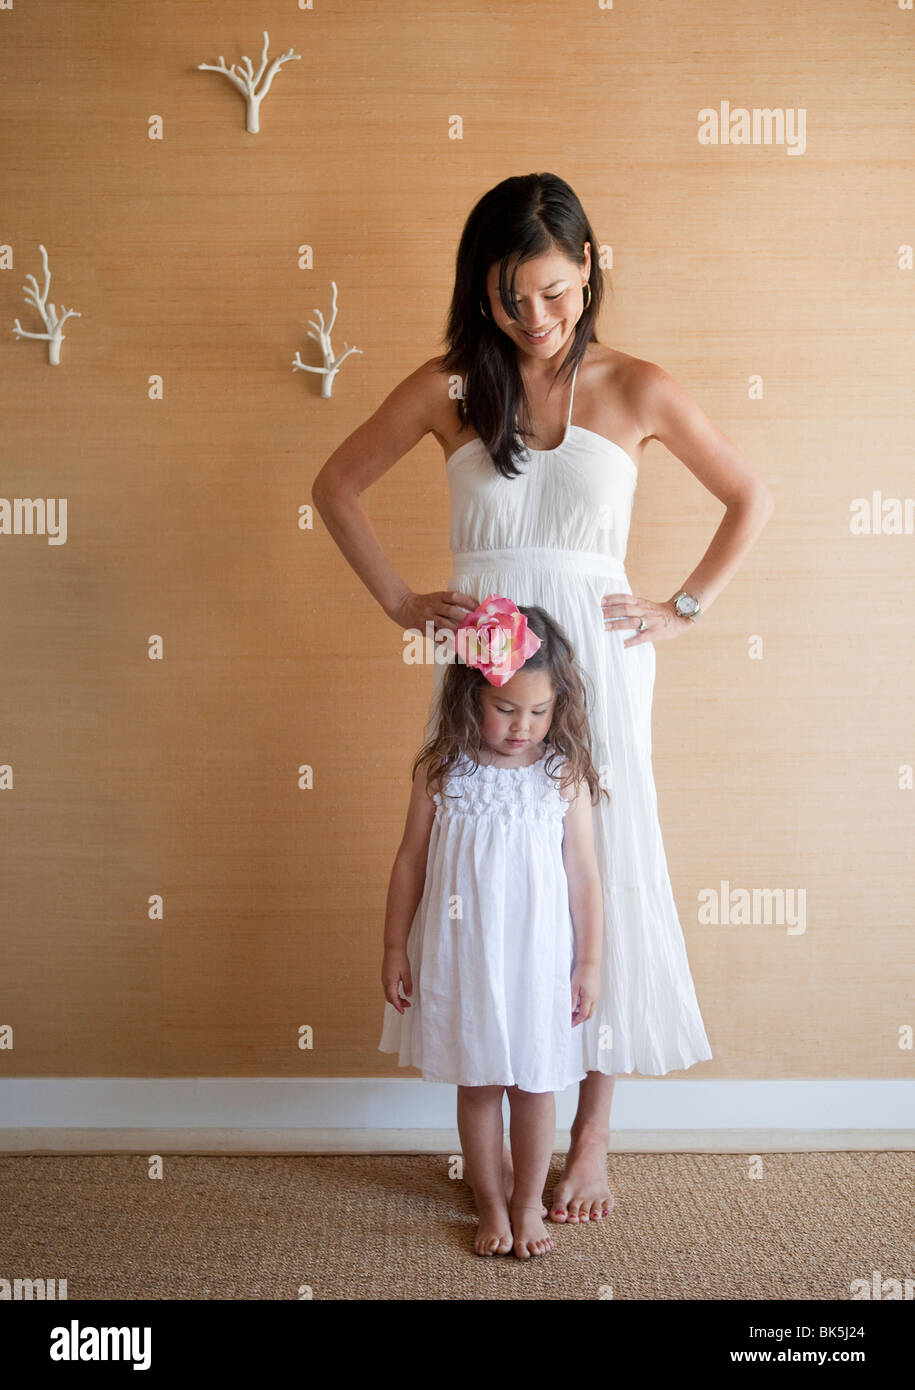 Mother and daughter in matching sundresses - Stock Image